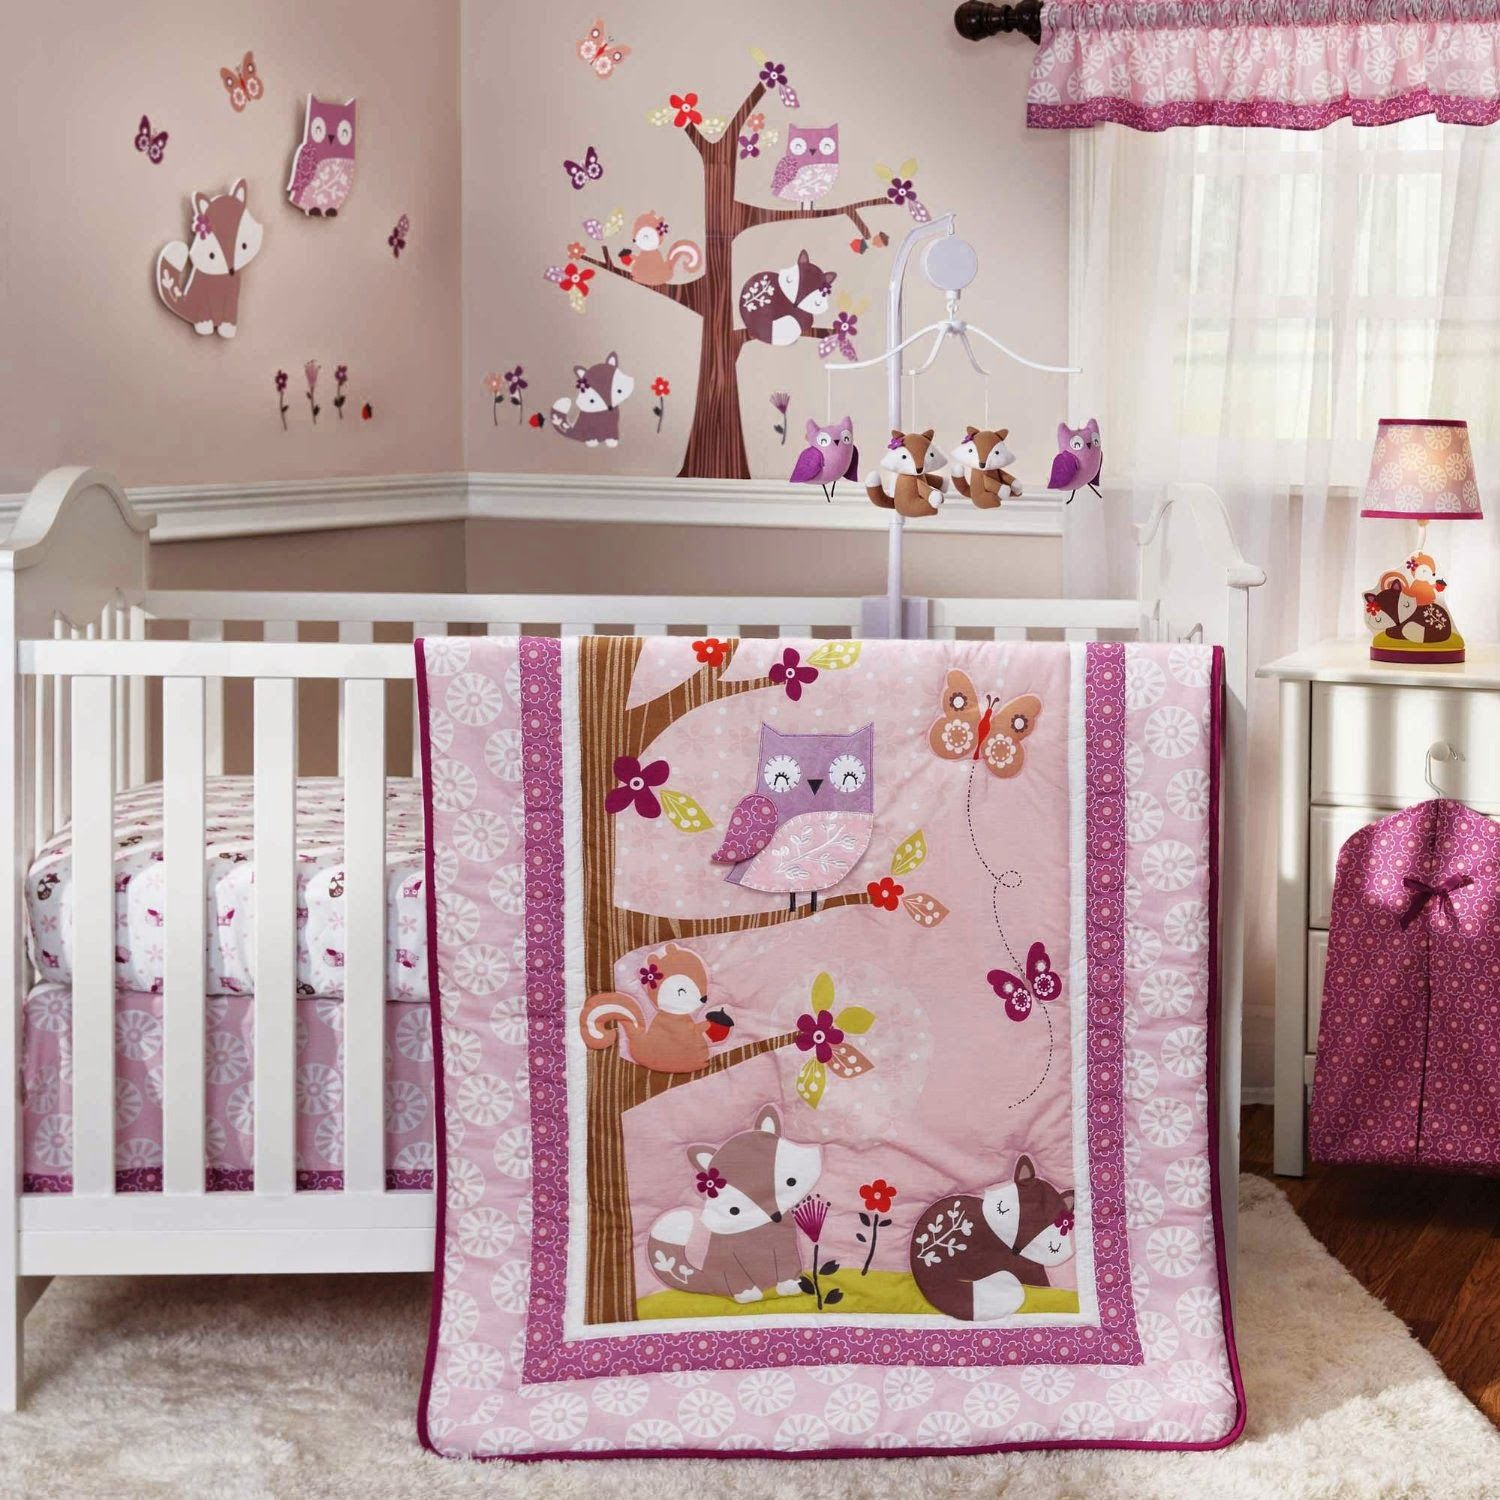 Forest And Woodland Animals Are Right At Home In A Baby Room Decorating With Fo Owls Deer Bears Is So Much Fun